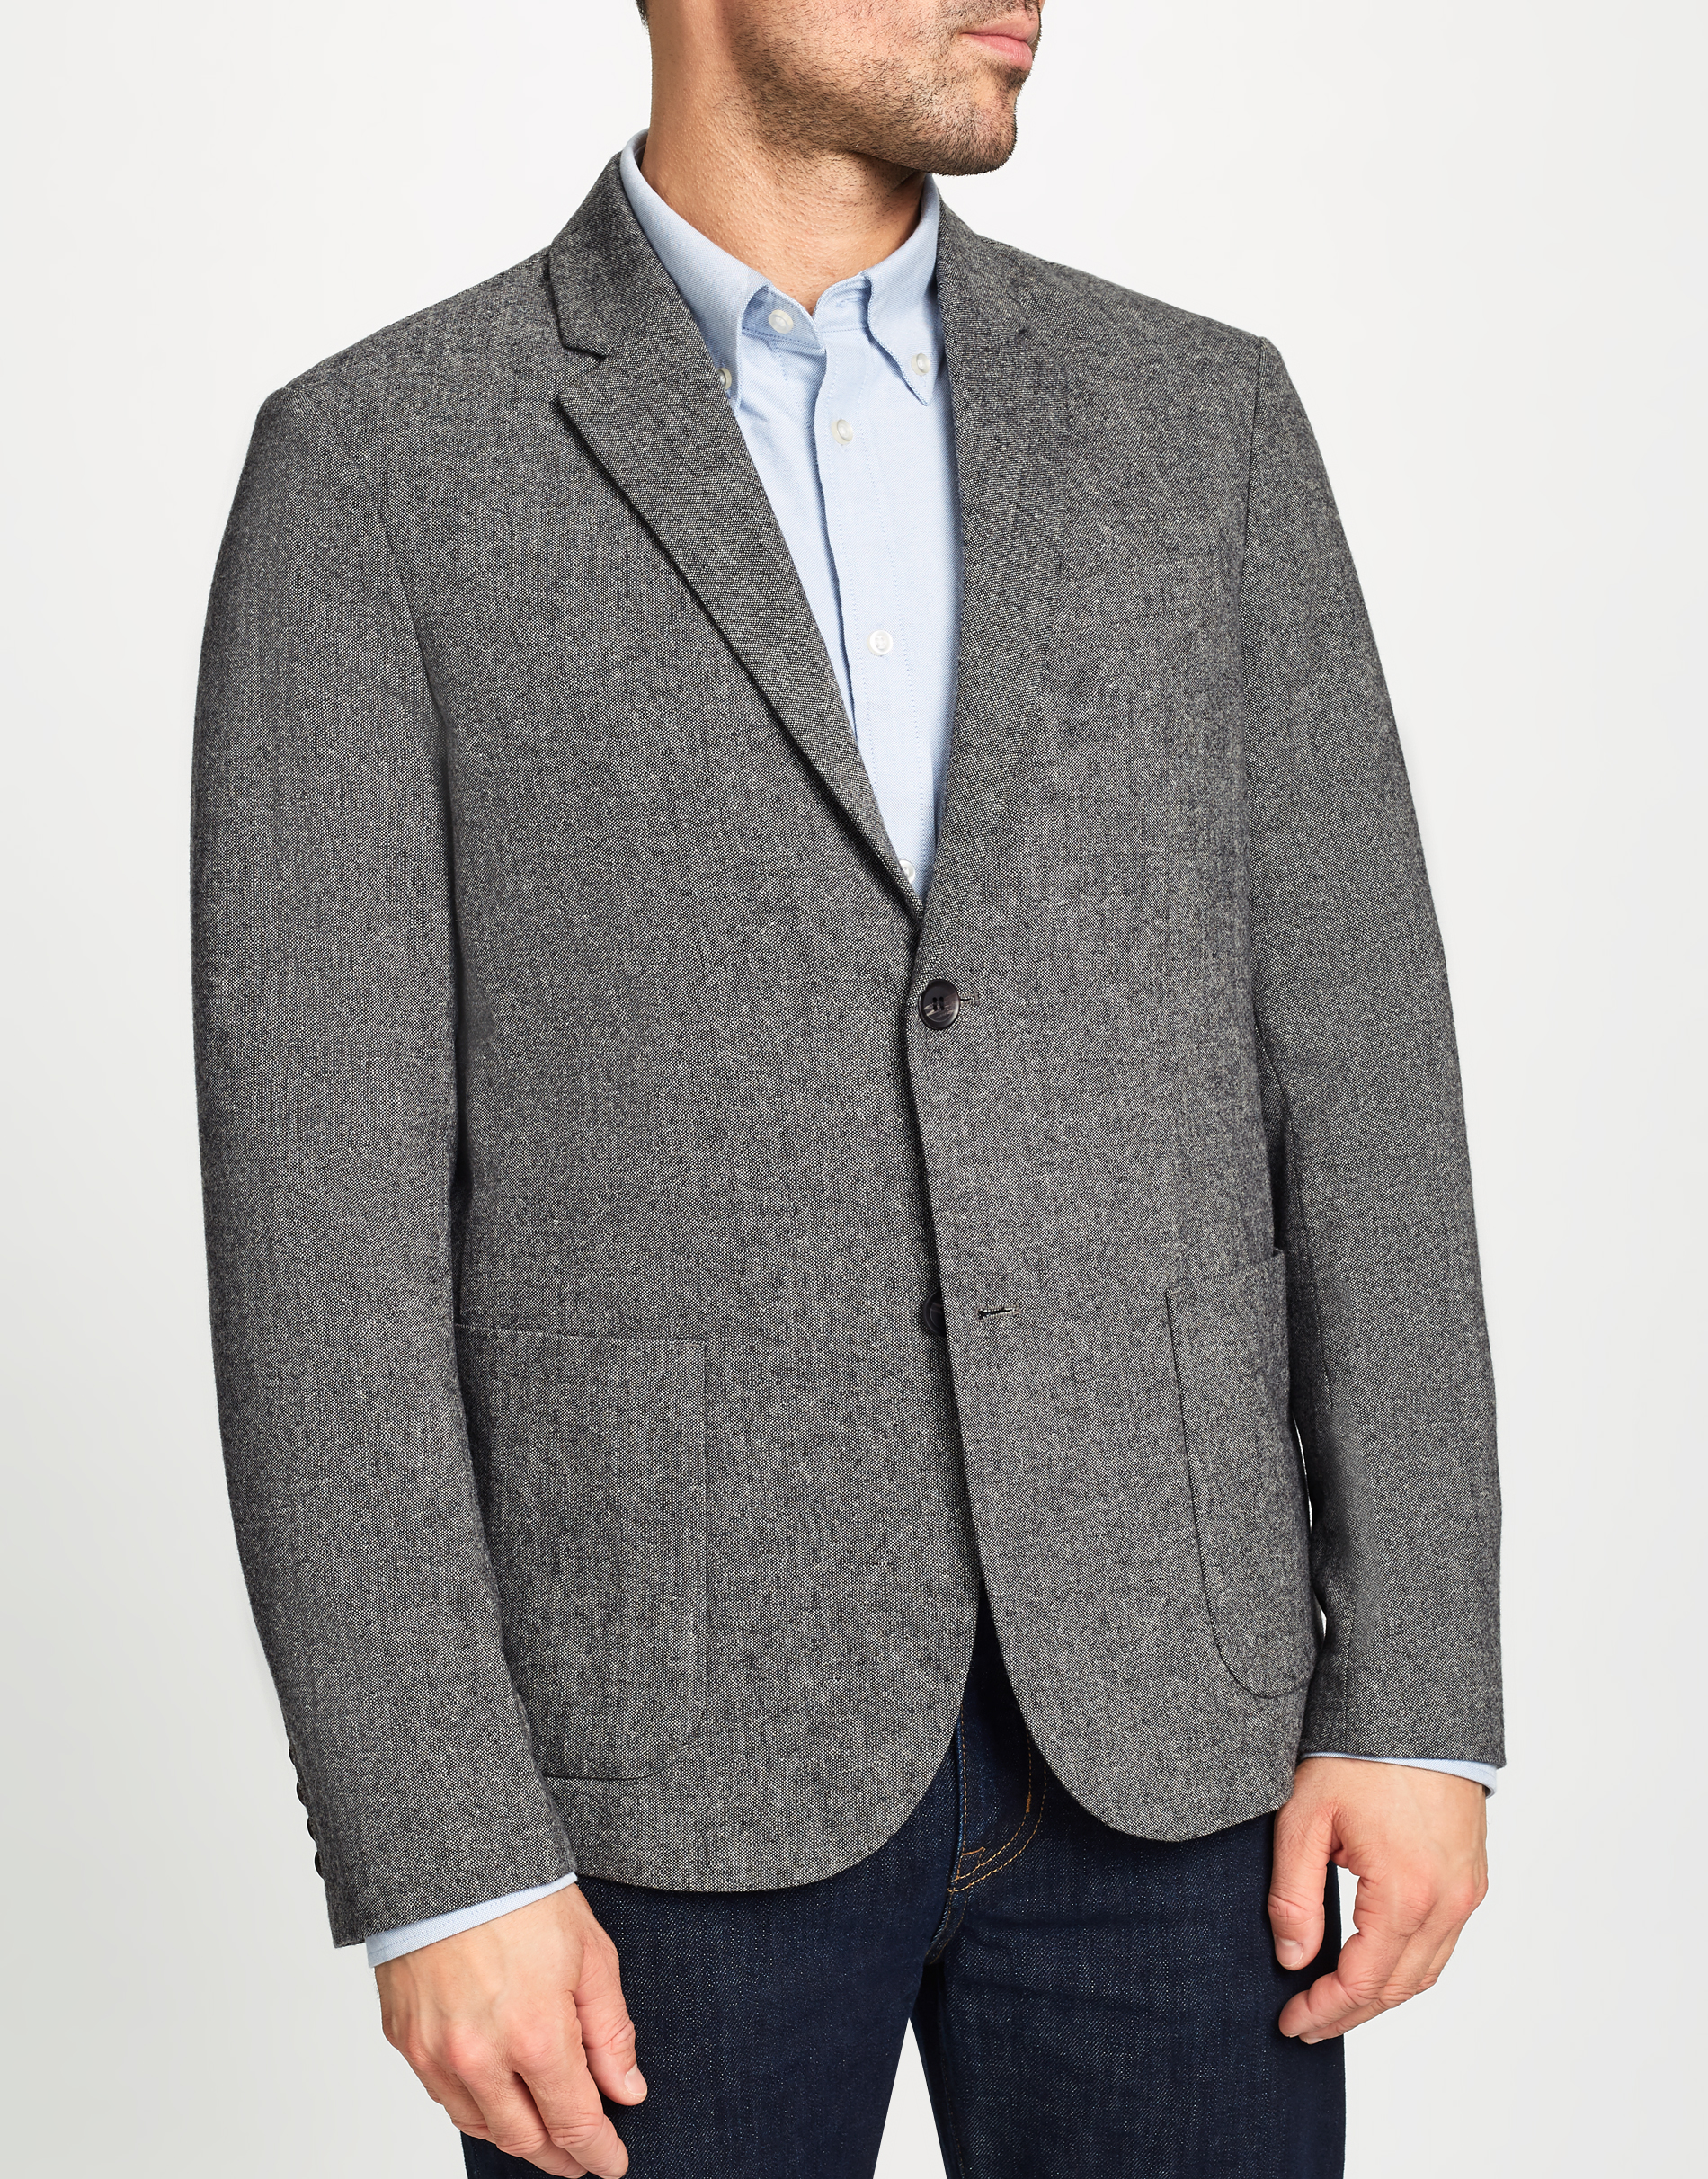 MVP Grey Hooper Wool Blend Hopsack Jacket - Charcoal